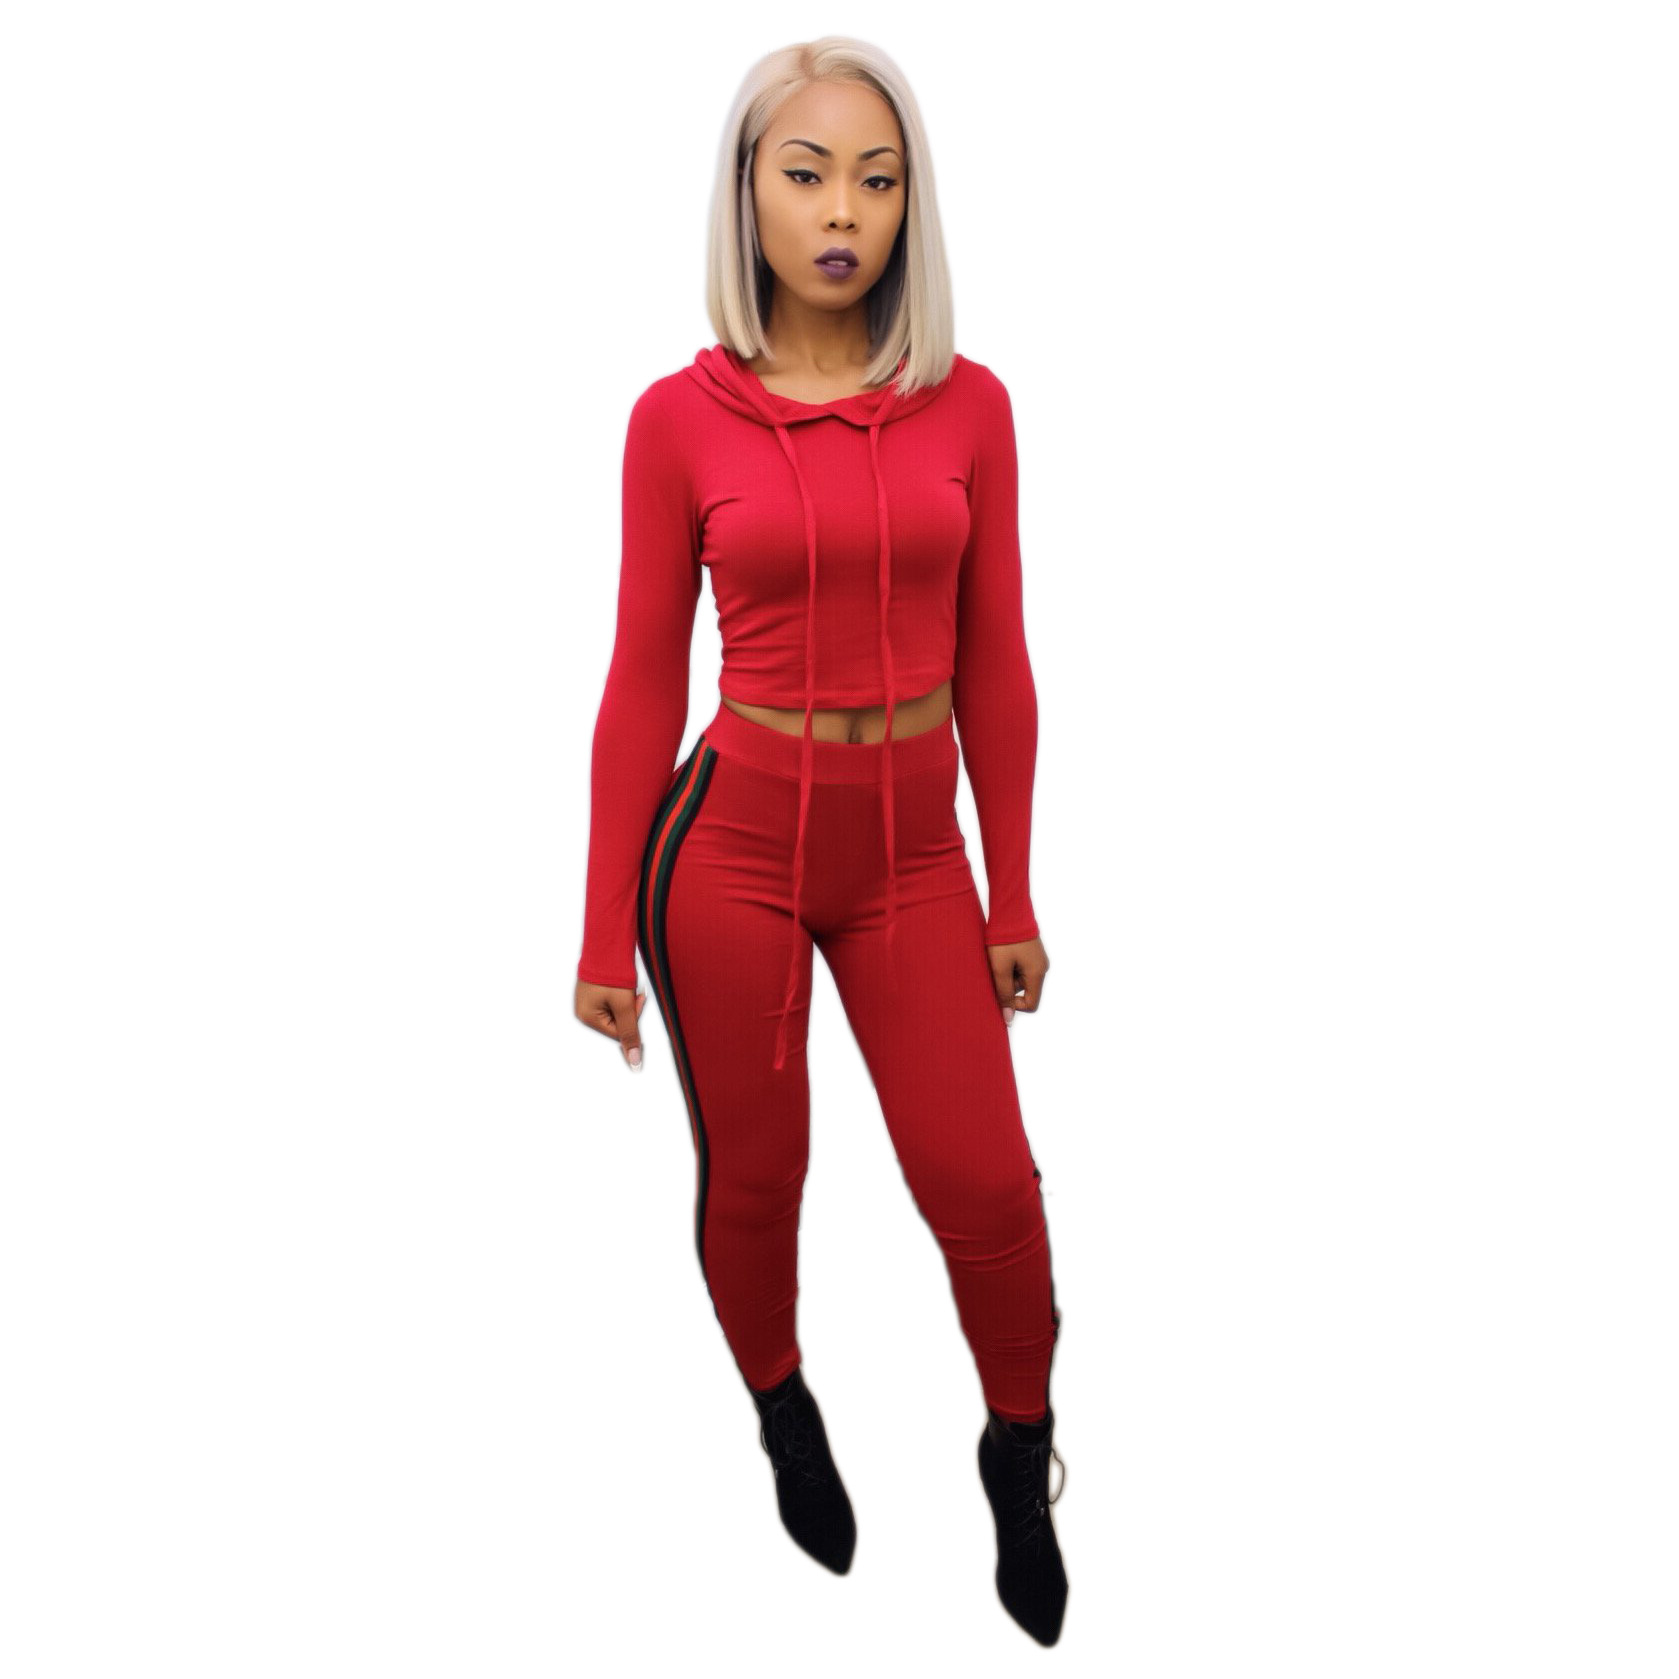 NEW Red/black Womens Sweat Suits Autumn Long Sleeve Short Crop Hoodies Tracksuit Two Pieces Trousers Womens 2 Piece Outfit Sets